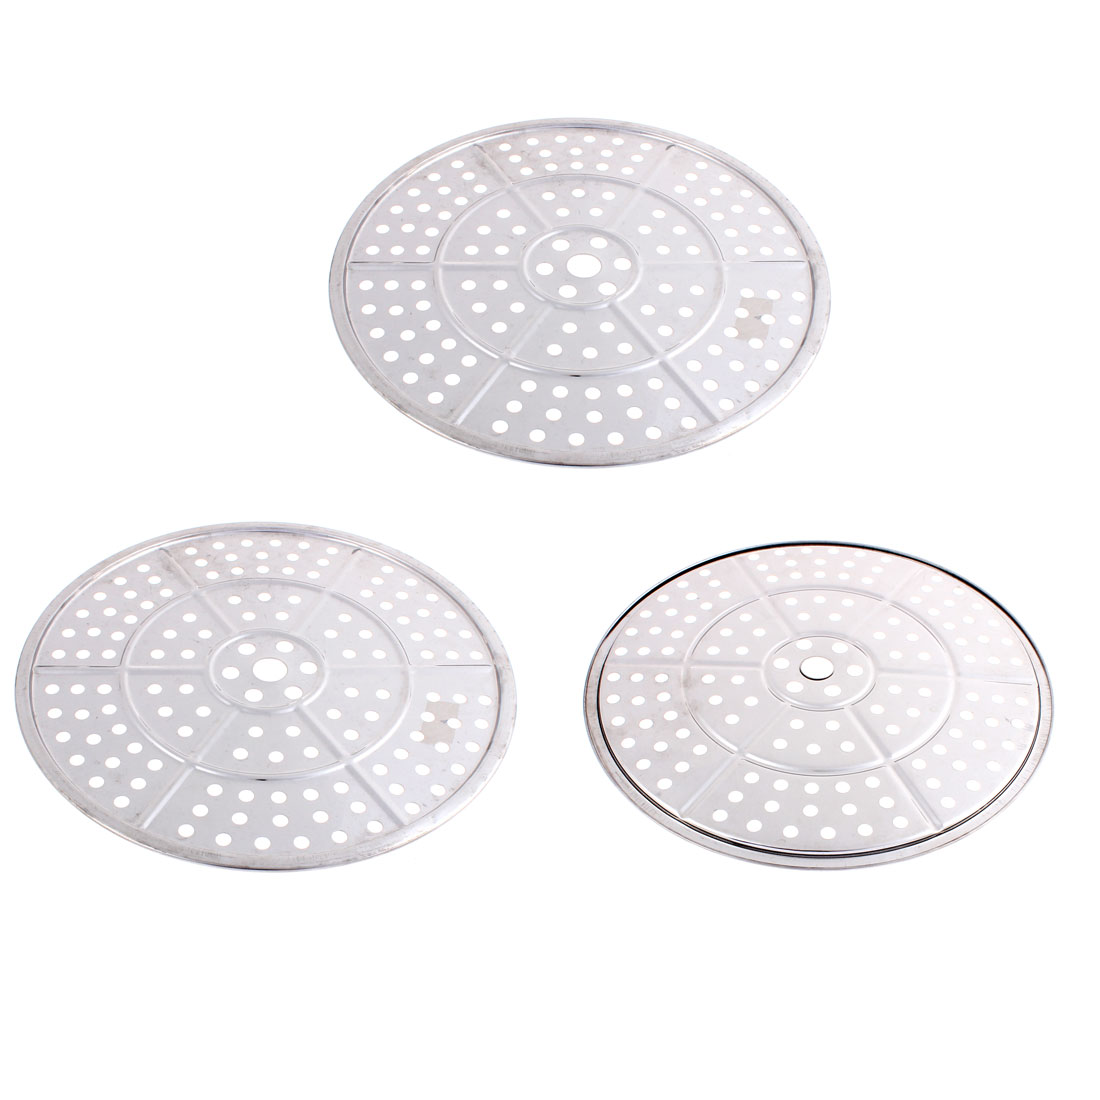 Cookware Helper Stainless Steel Food Steamer Rack Insert Plate 30cm Dia 3pcs